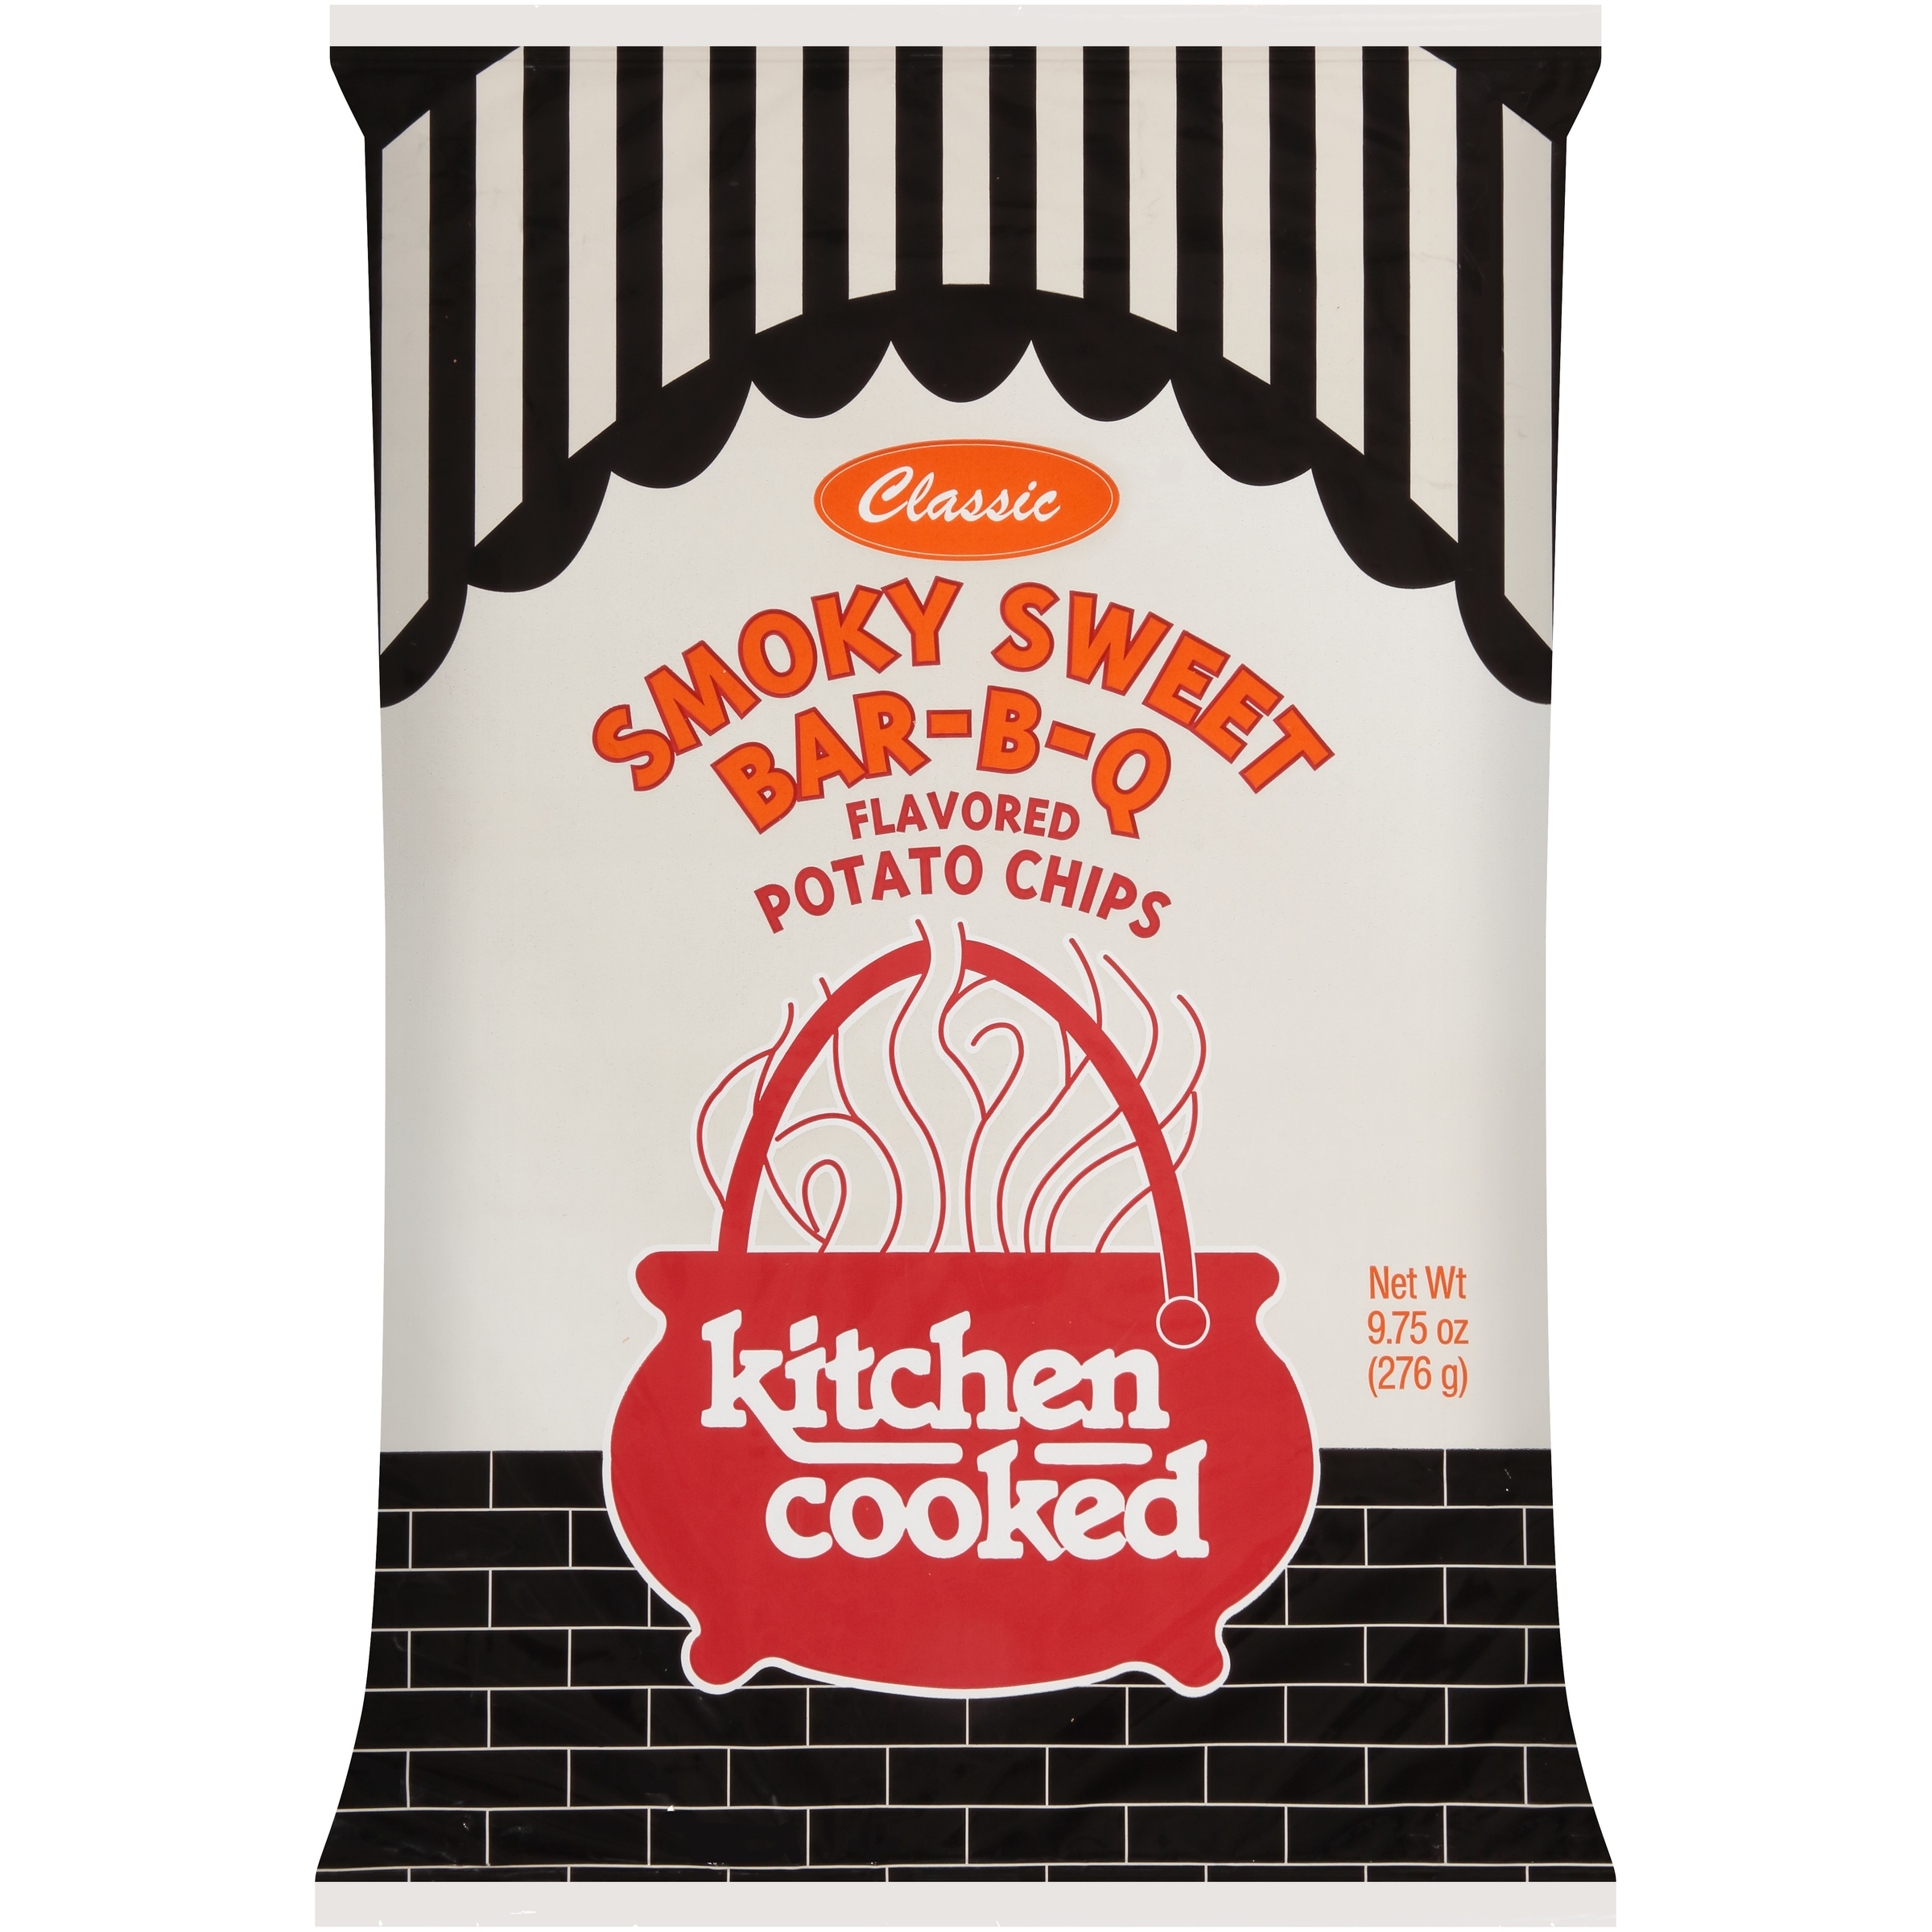 Kitchen Cooked Classic Smoky Sweet Bar-B-Q Flavored Potato Chips 9.75 oz. Bag